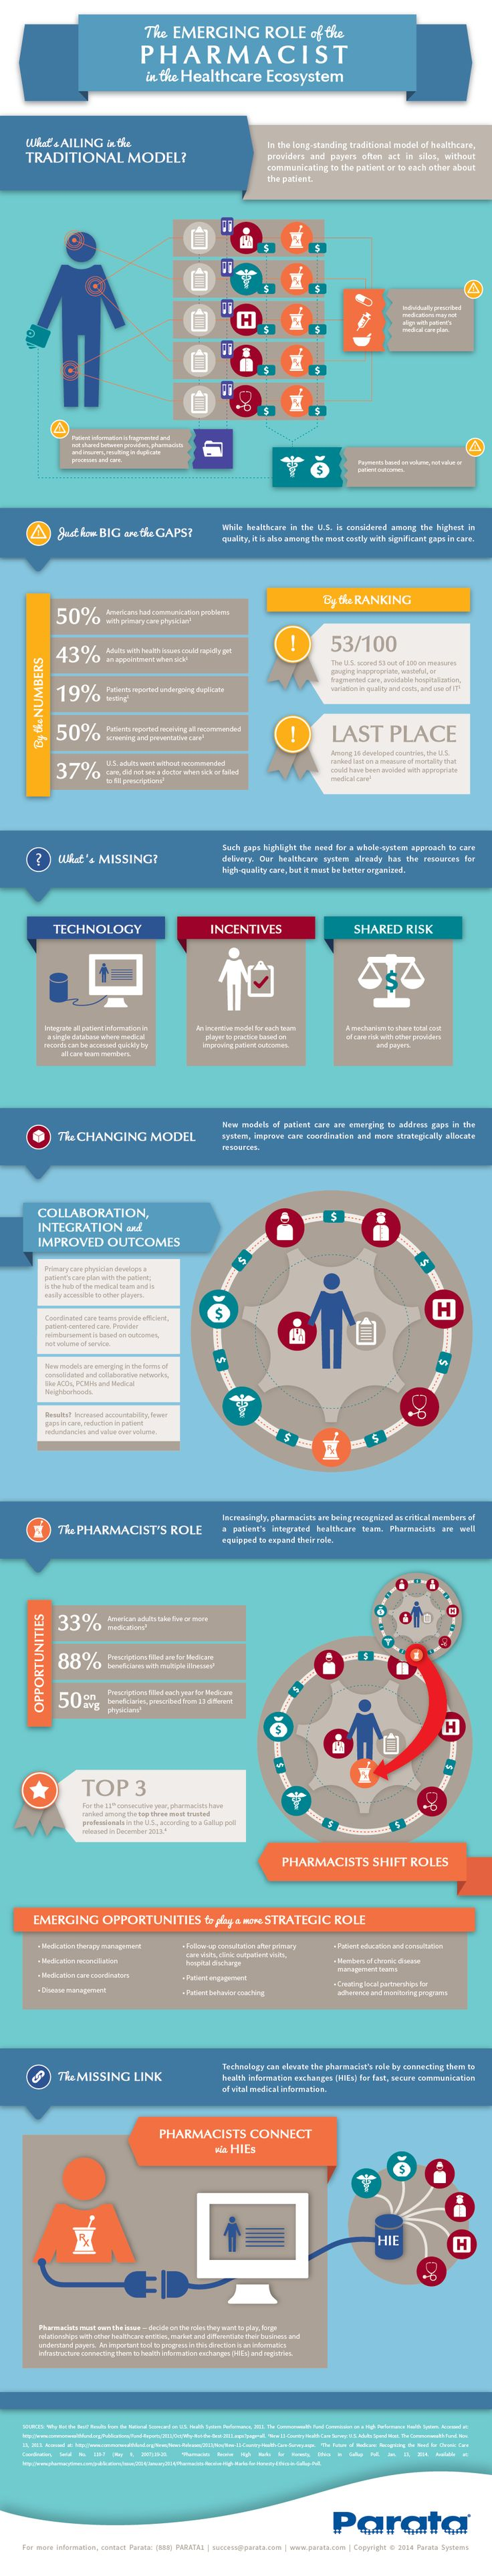 The Emerging Role of the Pharmacist in the Healthcare Ecosystem